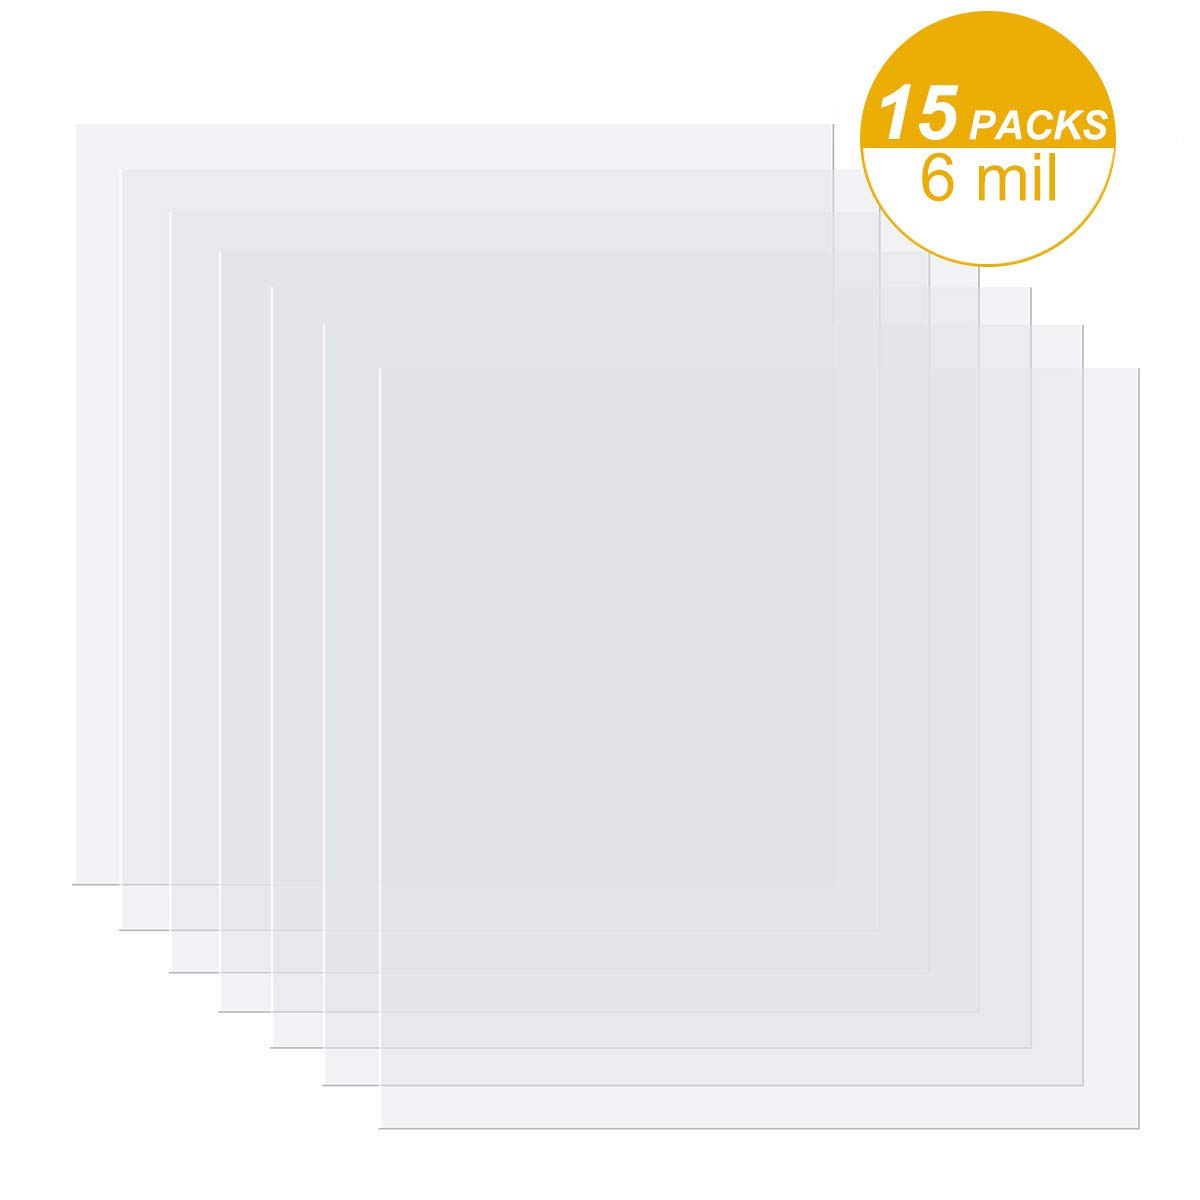 15 Pieces 6 mil Blank Stencil Material Mylar Template Sheets for Stencils, 12 x 12 inches by EG EMIGOO